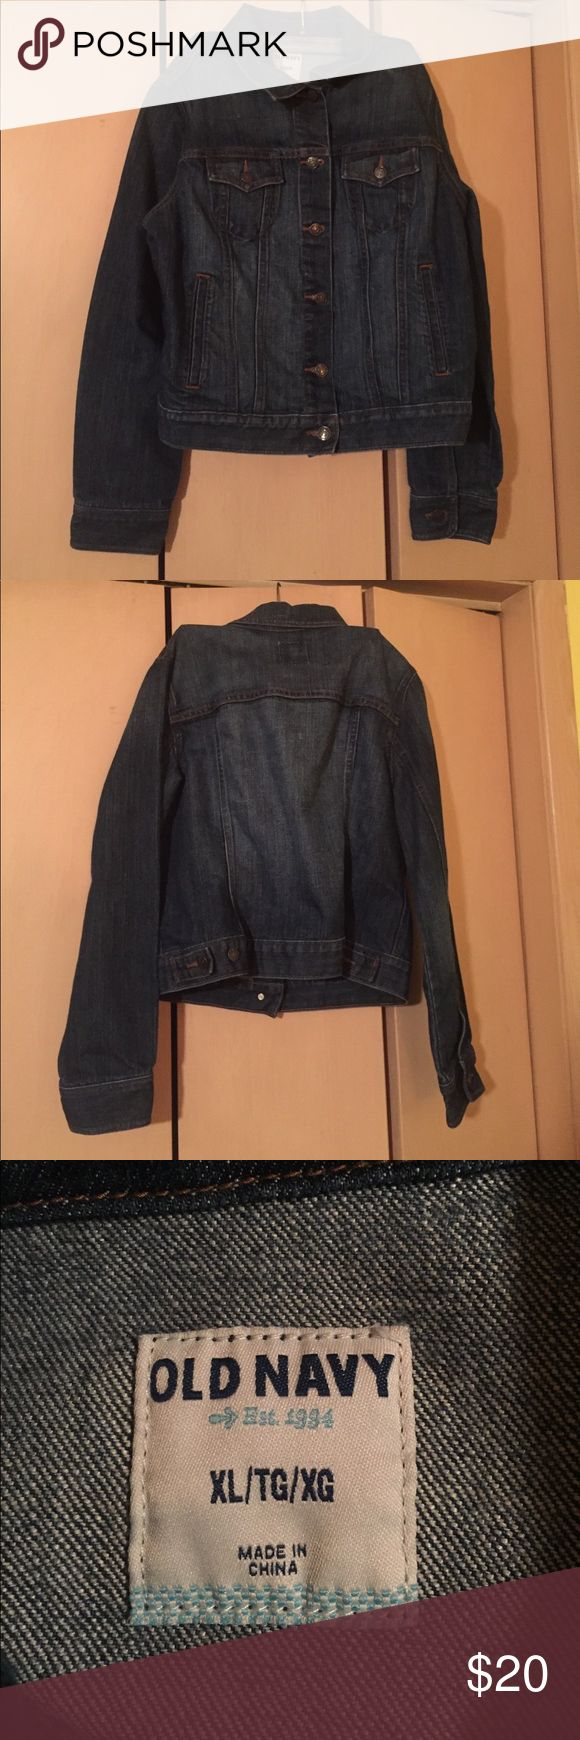 Old Navy Jean Jacket Worn maybe a dozen times. Can be a bit snug in the arms and shoulders so if you have broad shoulders or muscular arms I wouldn't buy this size. Old Navy Jackets & Coats Jean Jackets